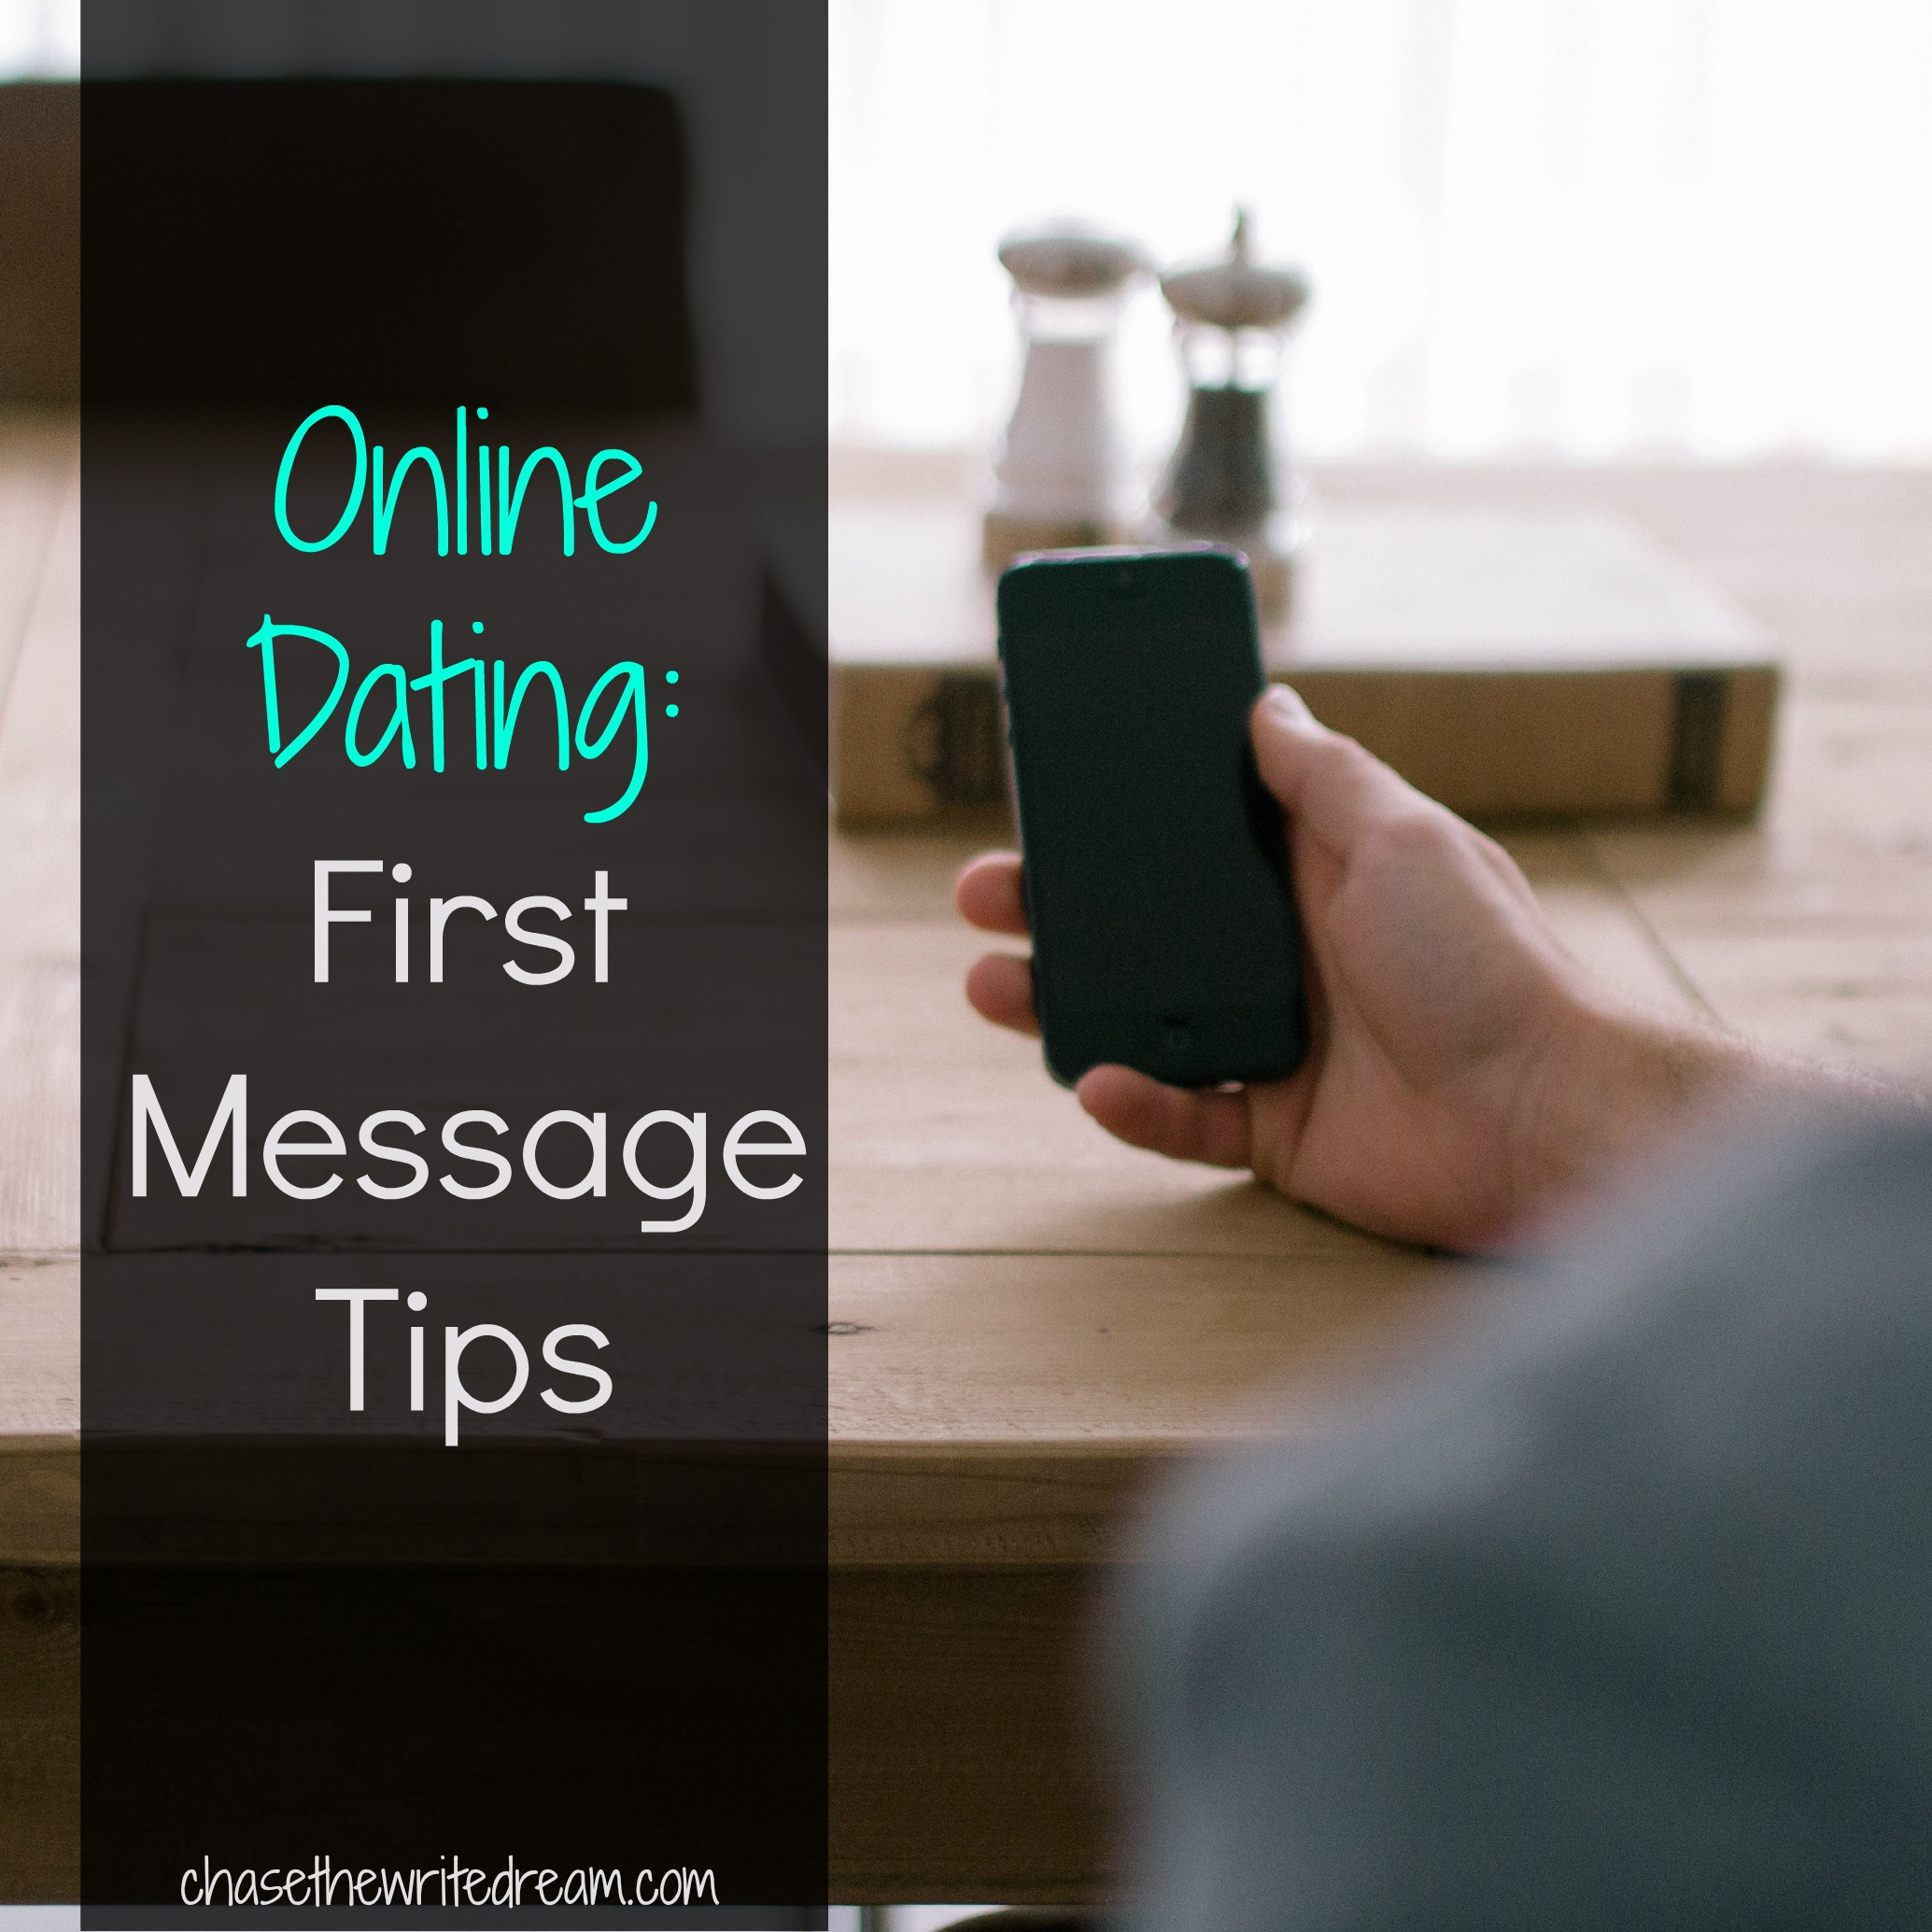 online dating messaging You only have one chance to make a good first impression while online dating—so make it count get online dating first message tips that will help you.